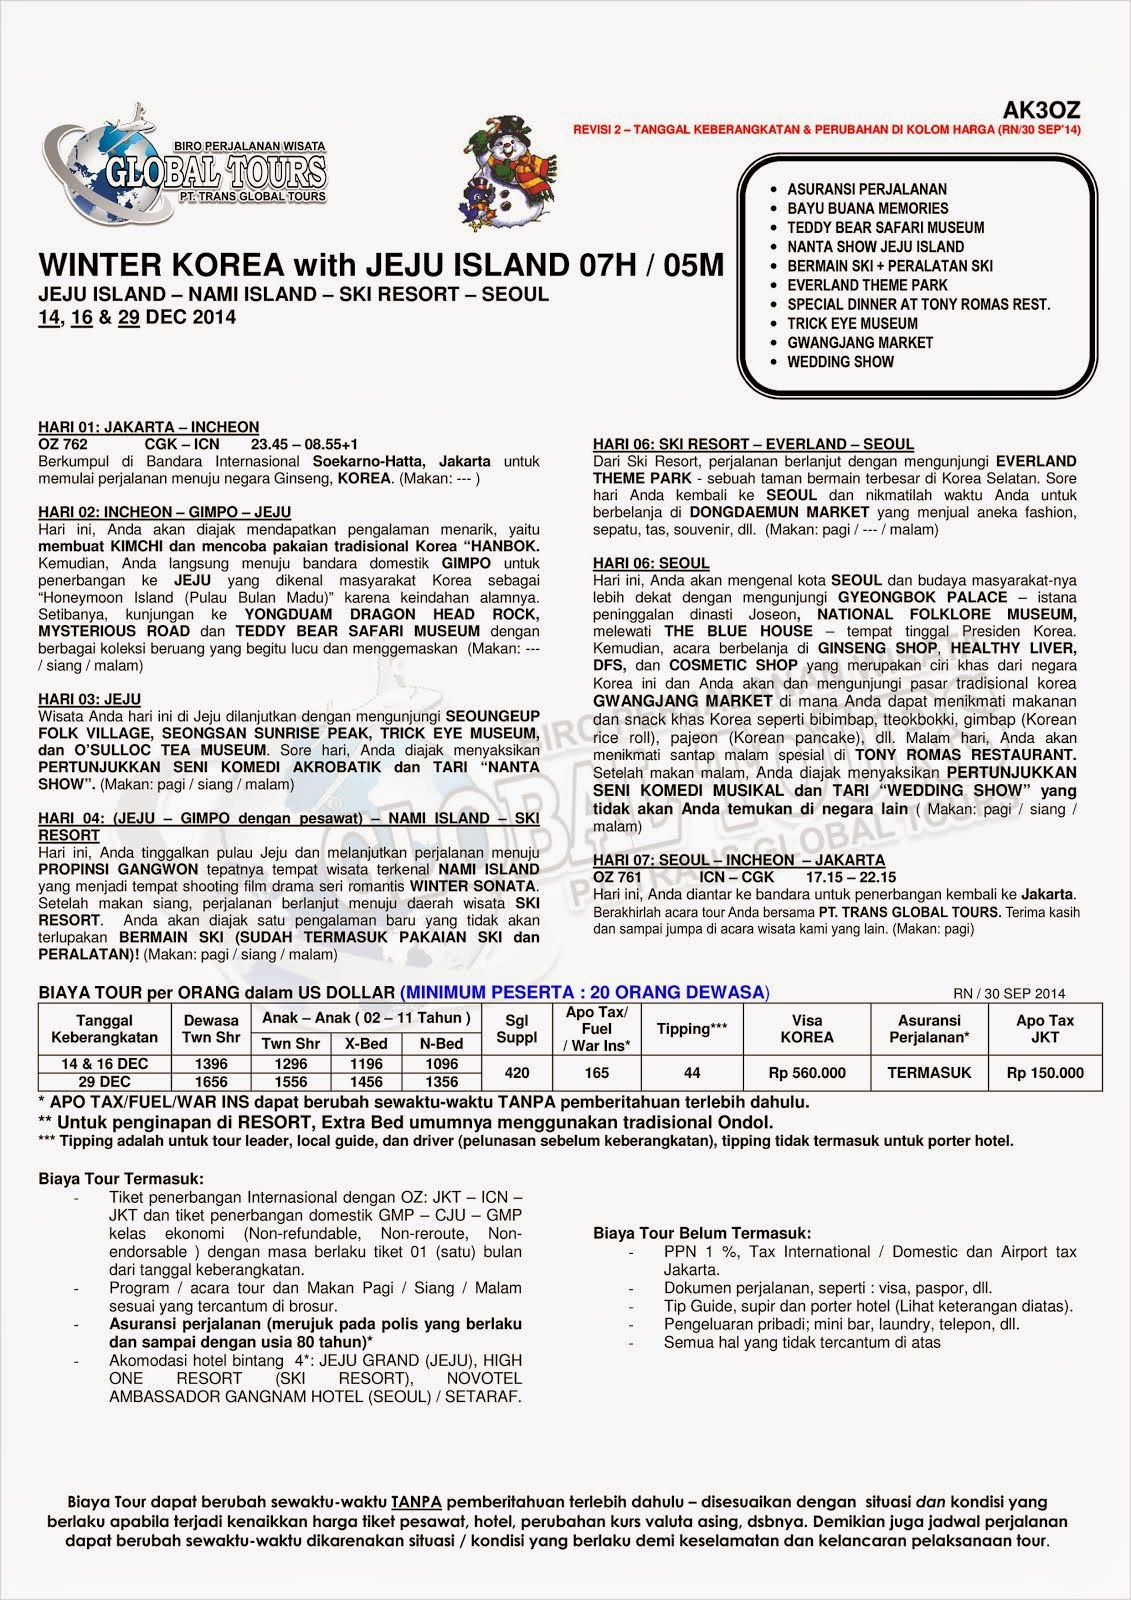 WINTER KOREA WITH JEJU ISLAND